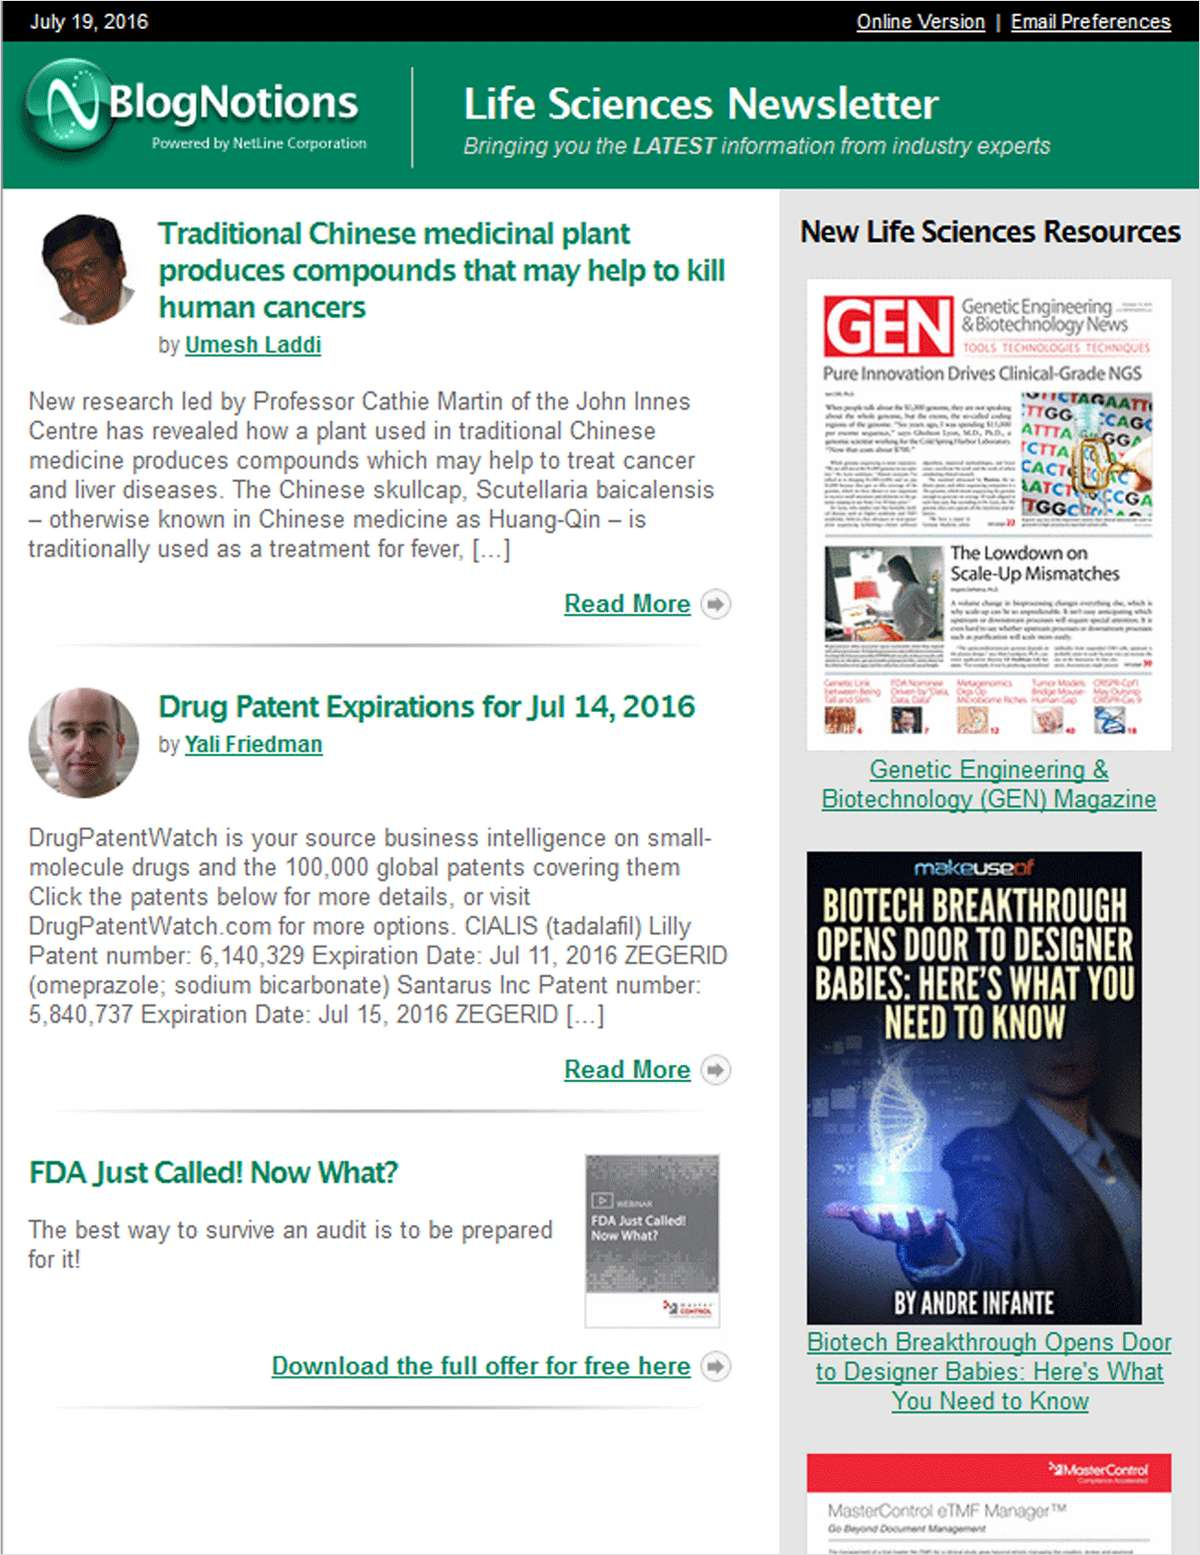 BlogNotions Life Sciences Newsletter: Monthly eNewsletter Featuring Blogs from Industry Experts